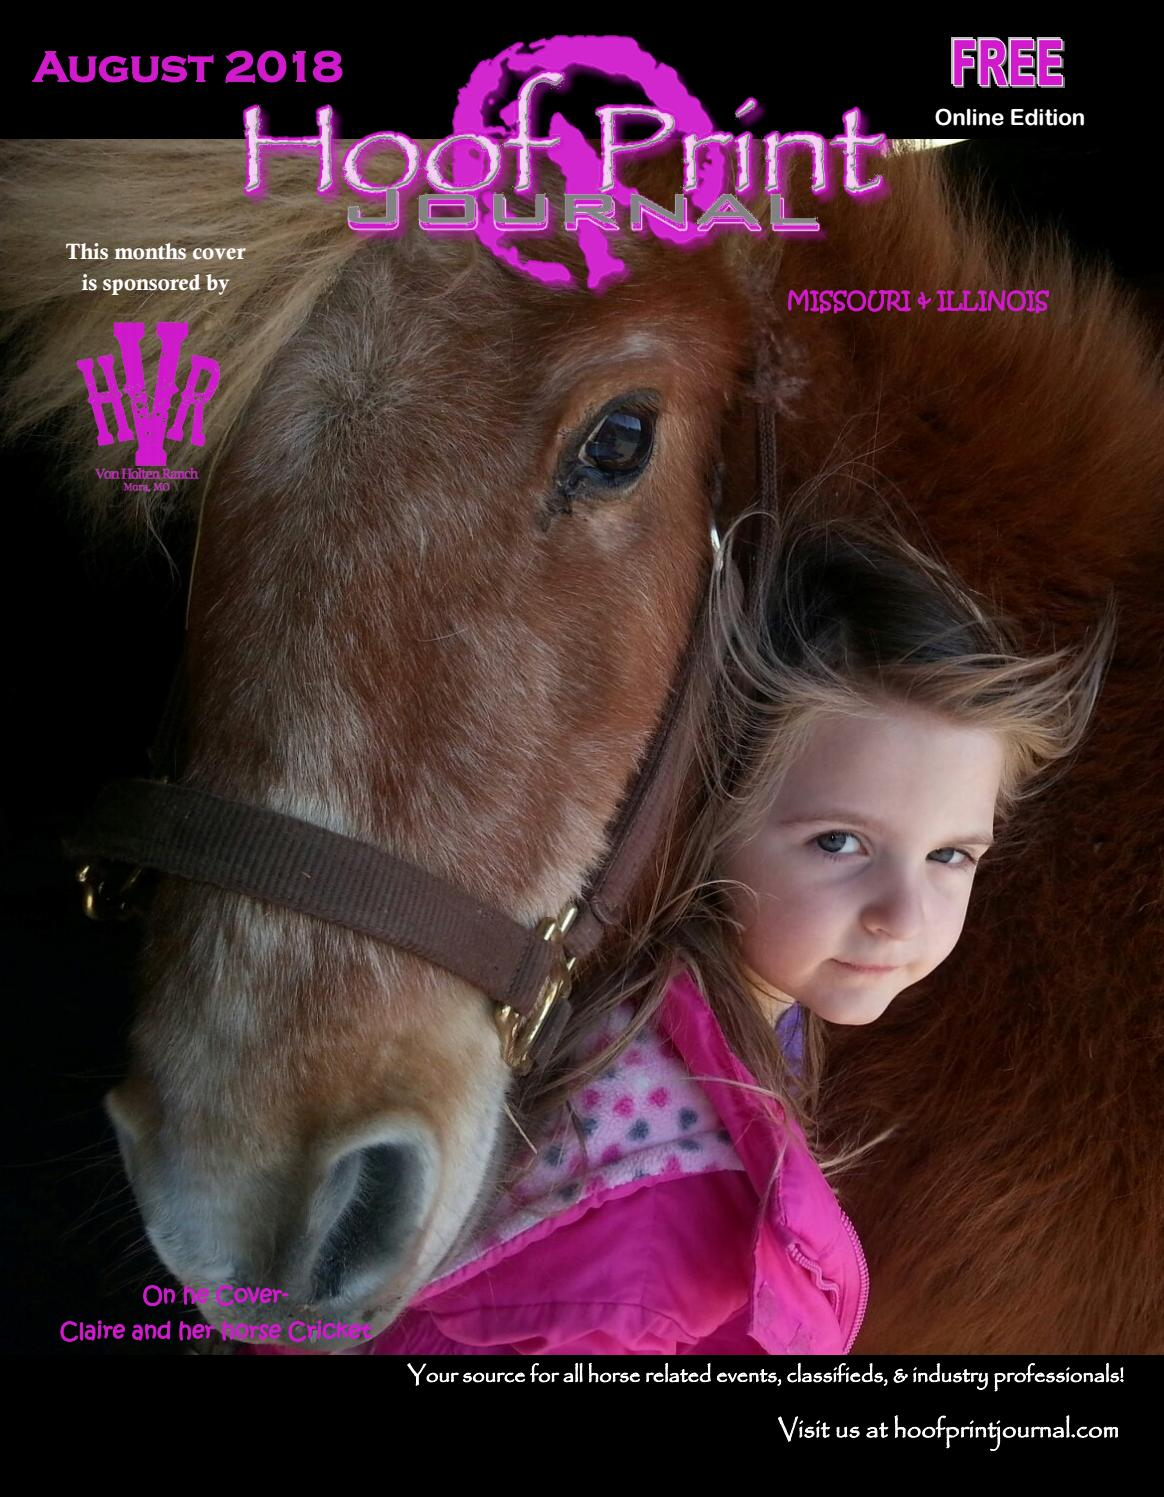 August 2018- Hoof Print Journal by The Hoof Print Journal